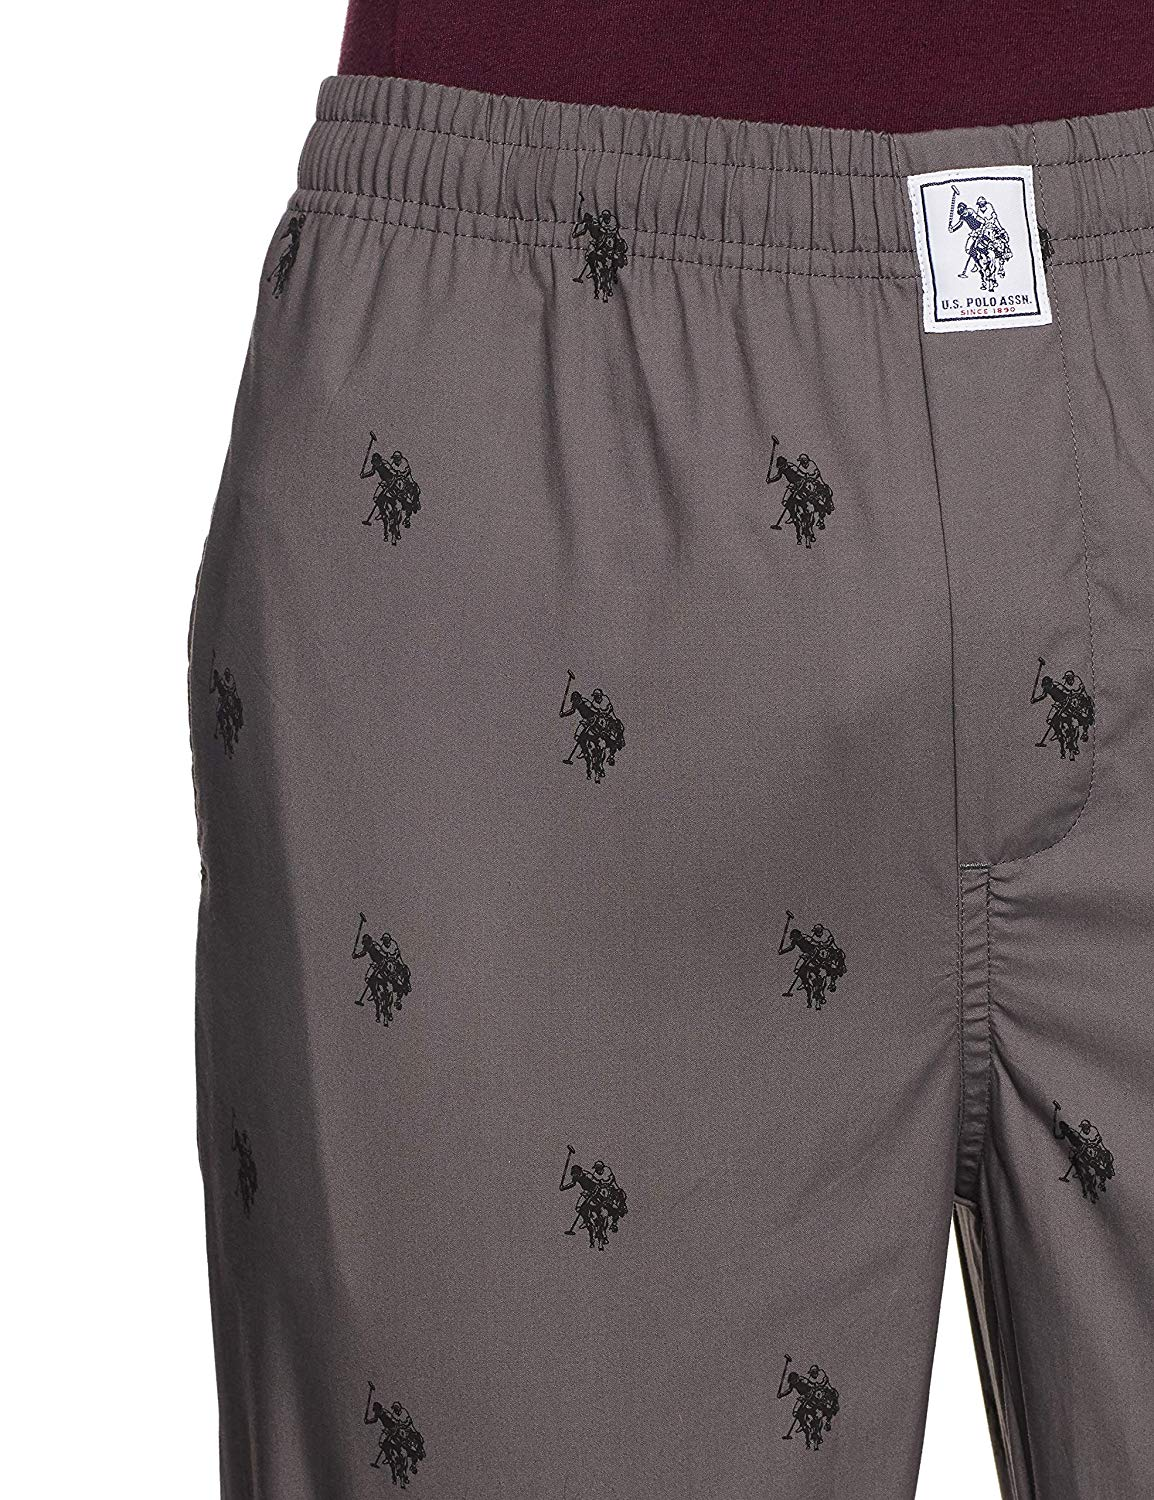 US POLO ASSN Men's Grey Lounge Pant (M,Grey)